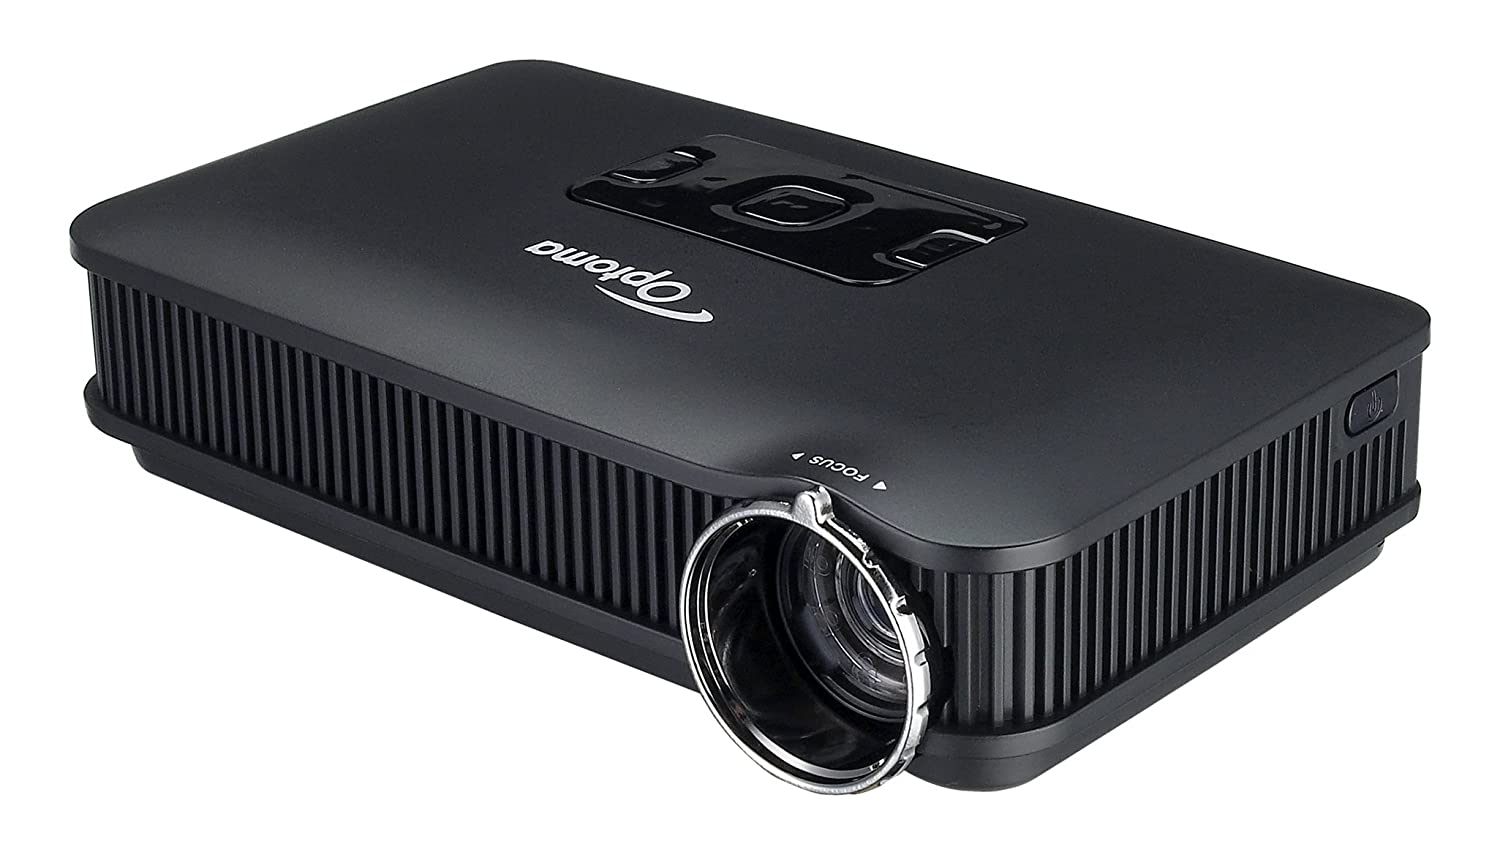 Best review top 8 home theater projector may 2018 for Best pocket projector review